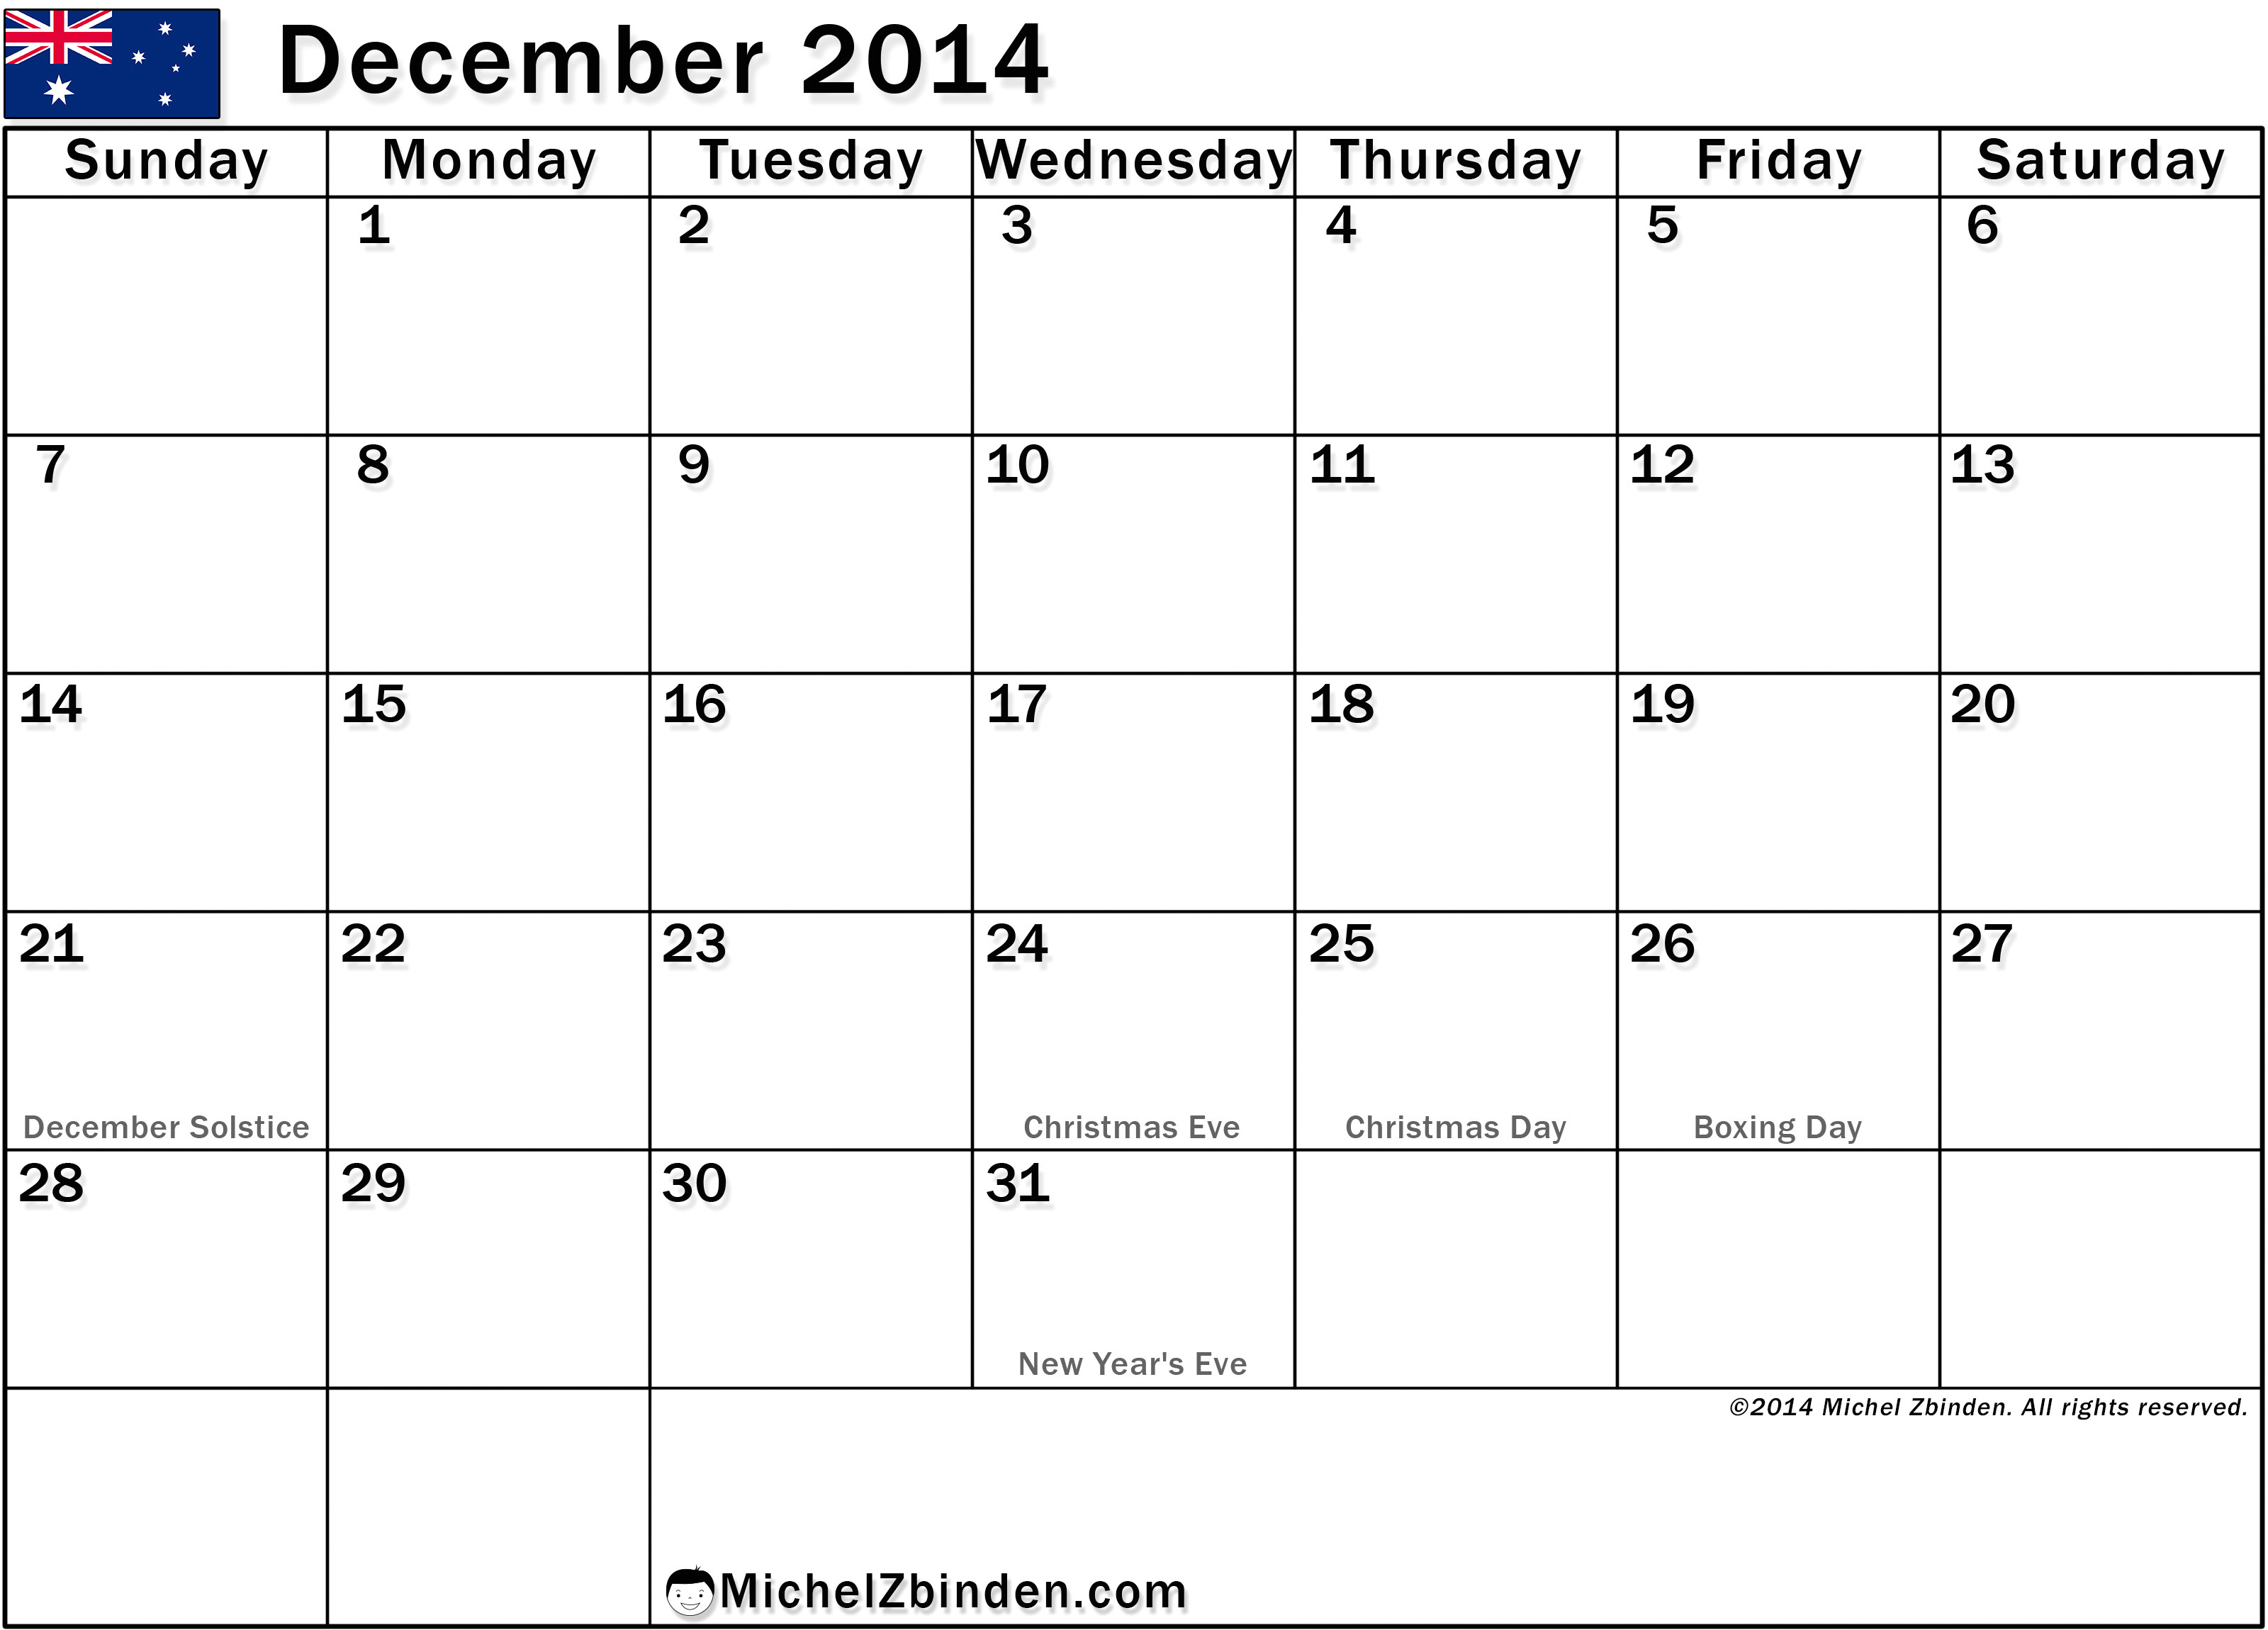 free printing of december 2014 calendar holidays in australia